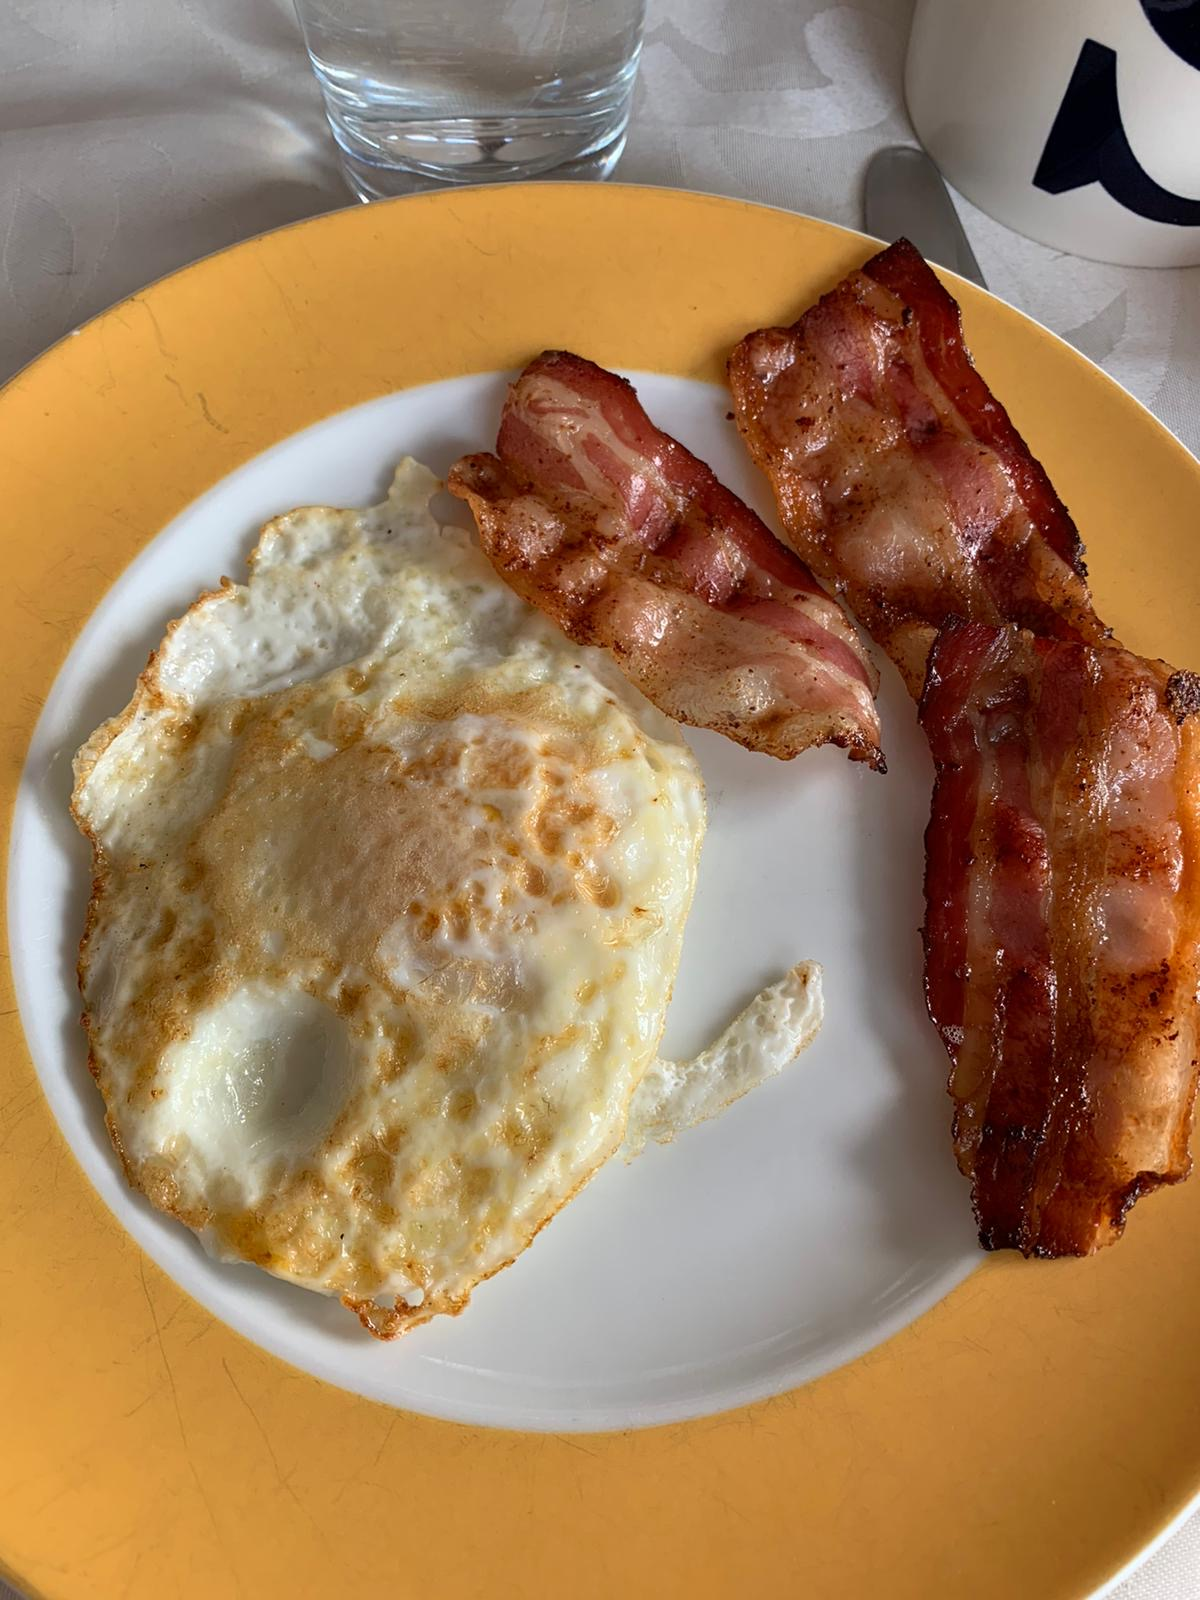 bacon and eggs over easy on a yellow plate